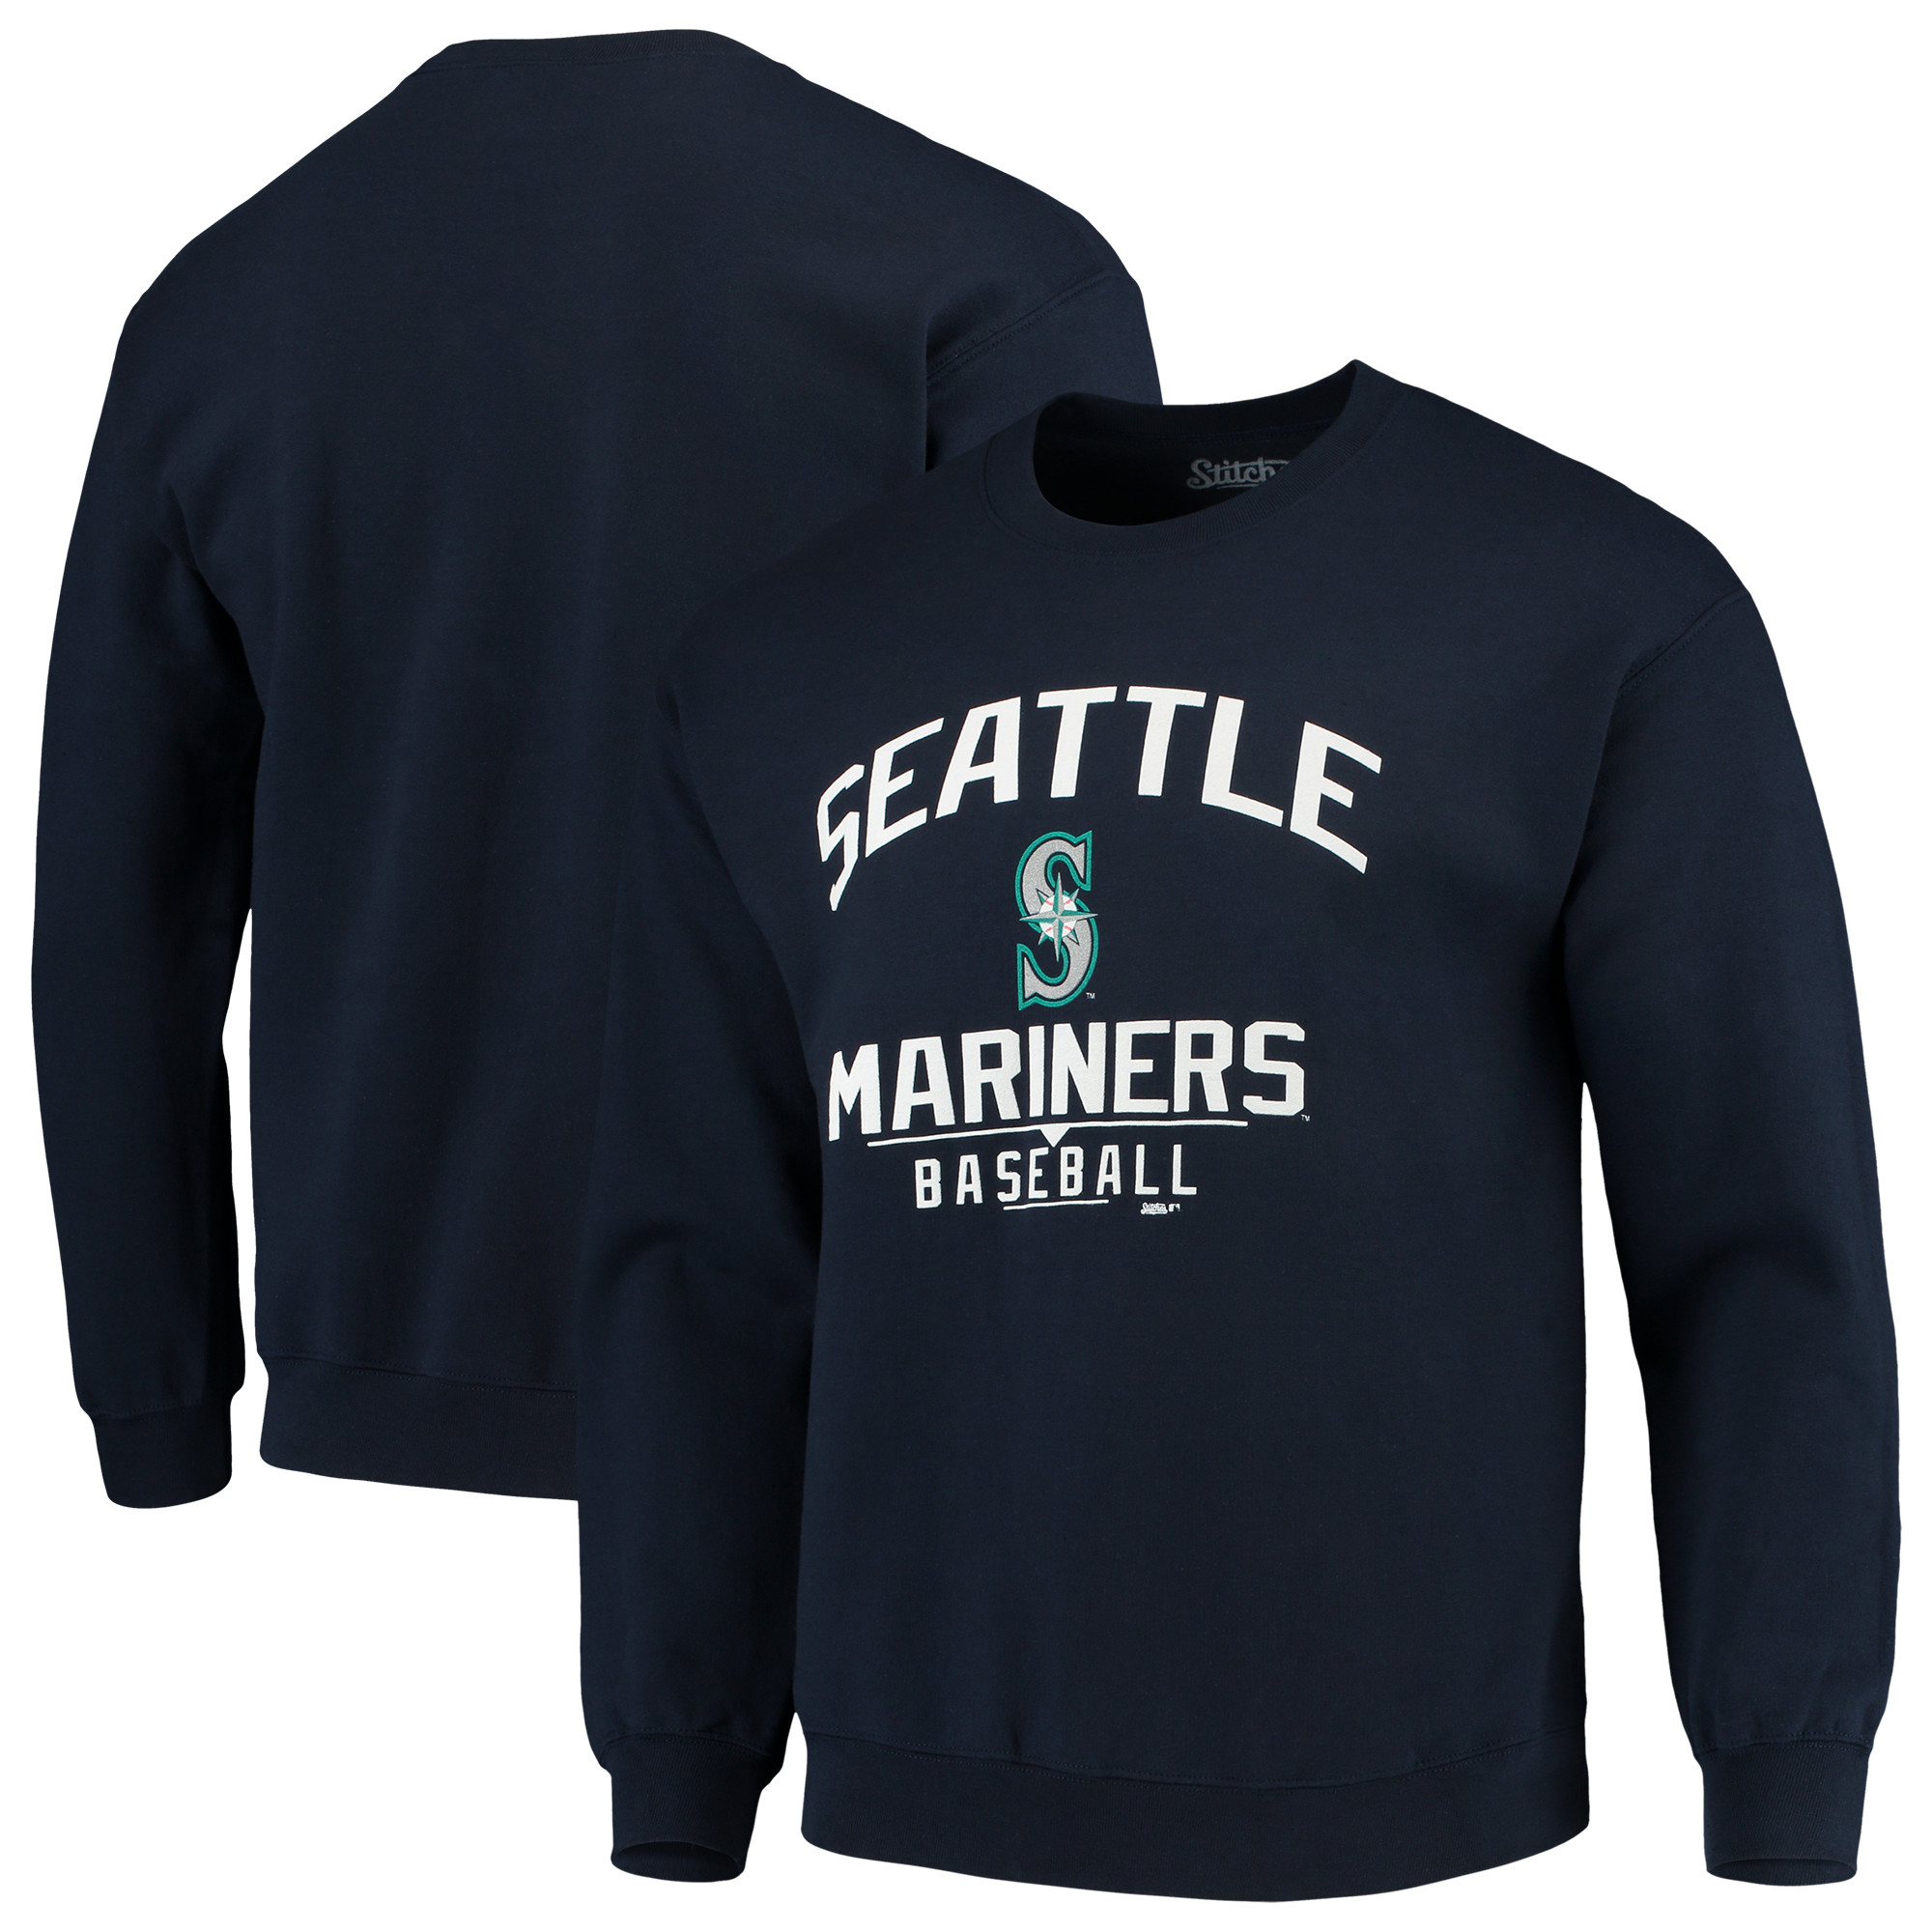 Seattle Mariners Stitches Holiday Pullover Crew Sweatshirt - Navy